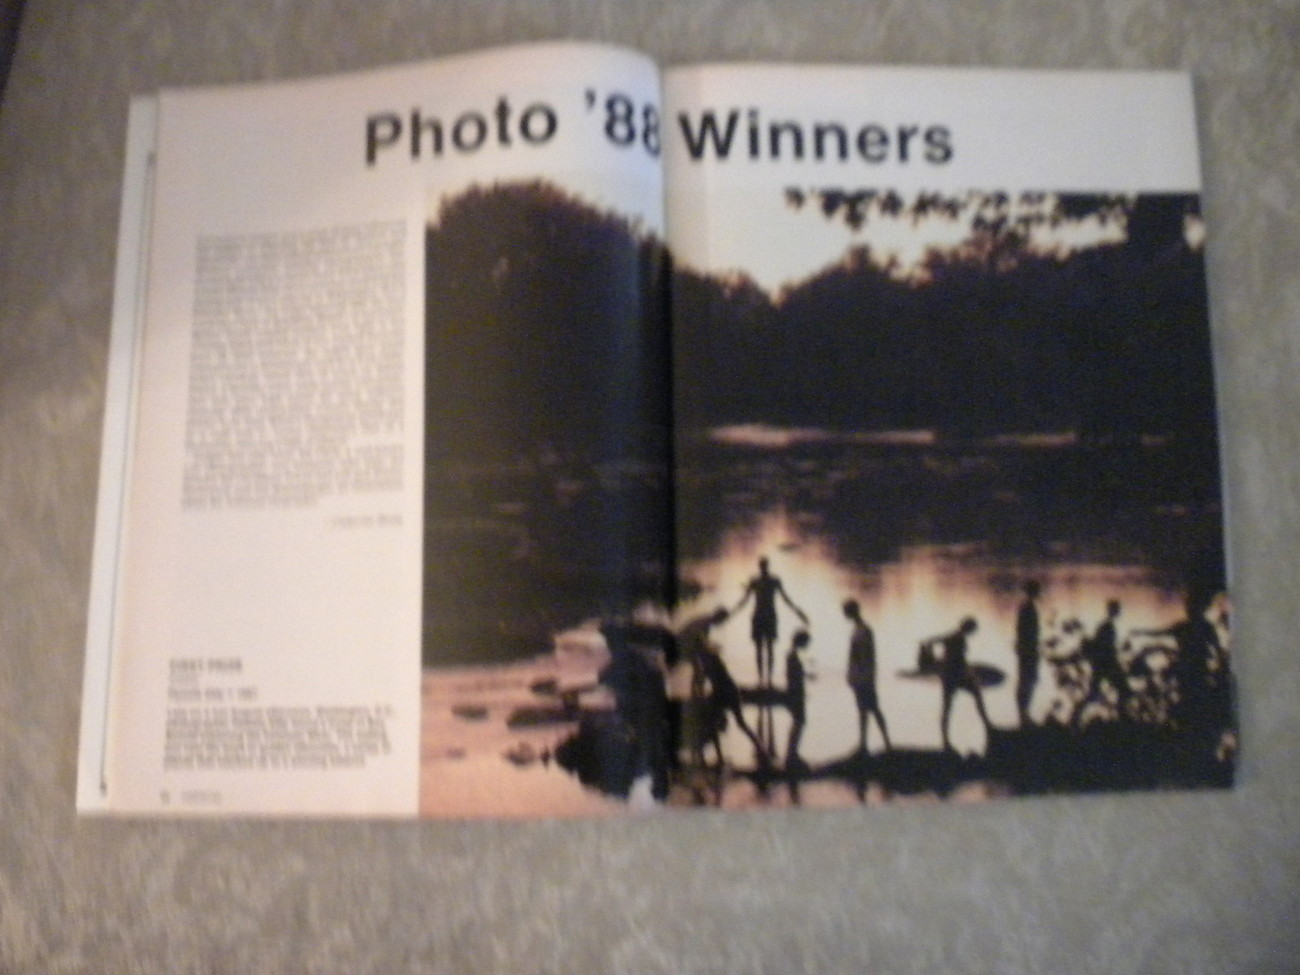 Americas May 1988: Peru, Uruguay's Cars, Chile, Winning Photo Images, Brazil